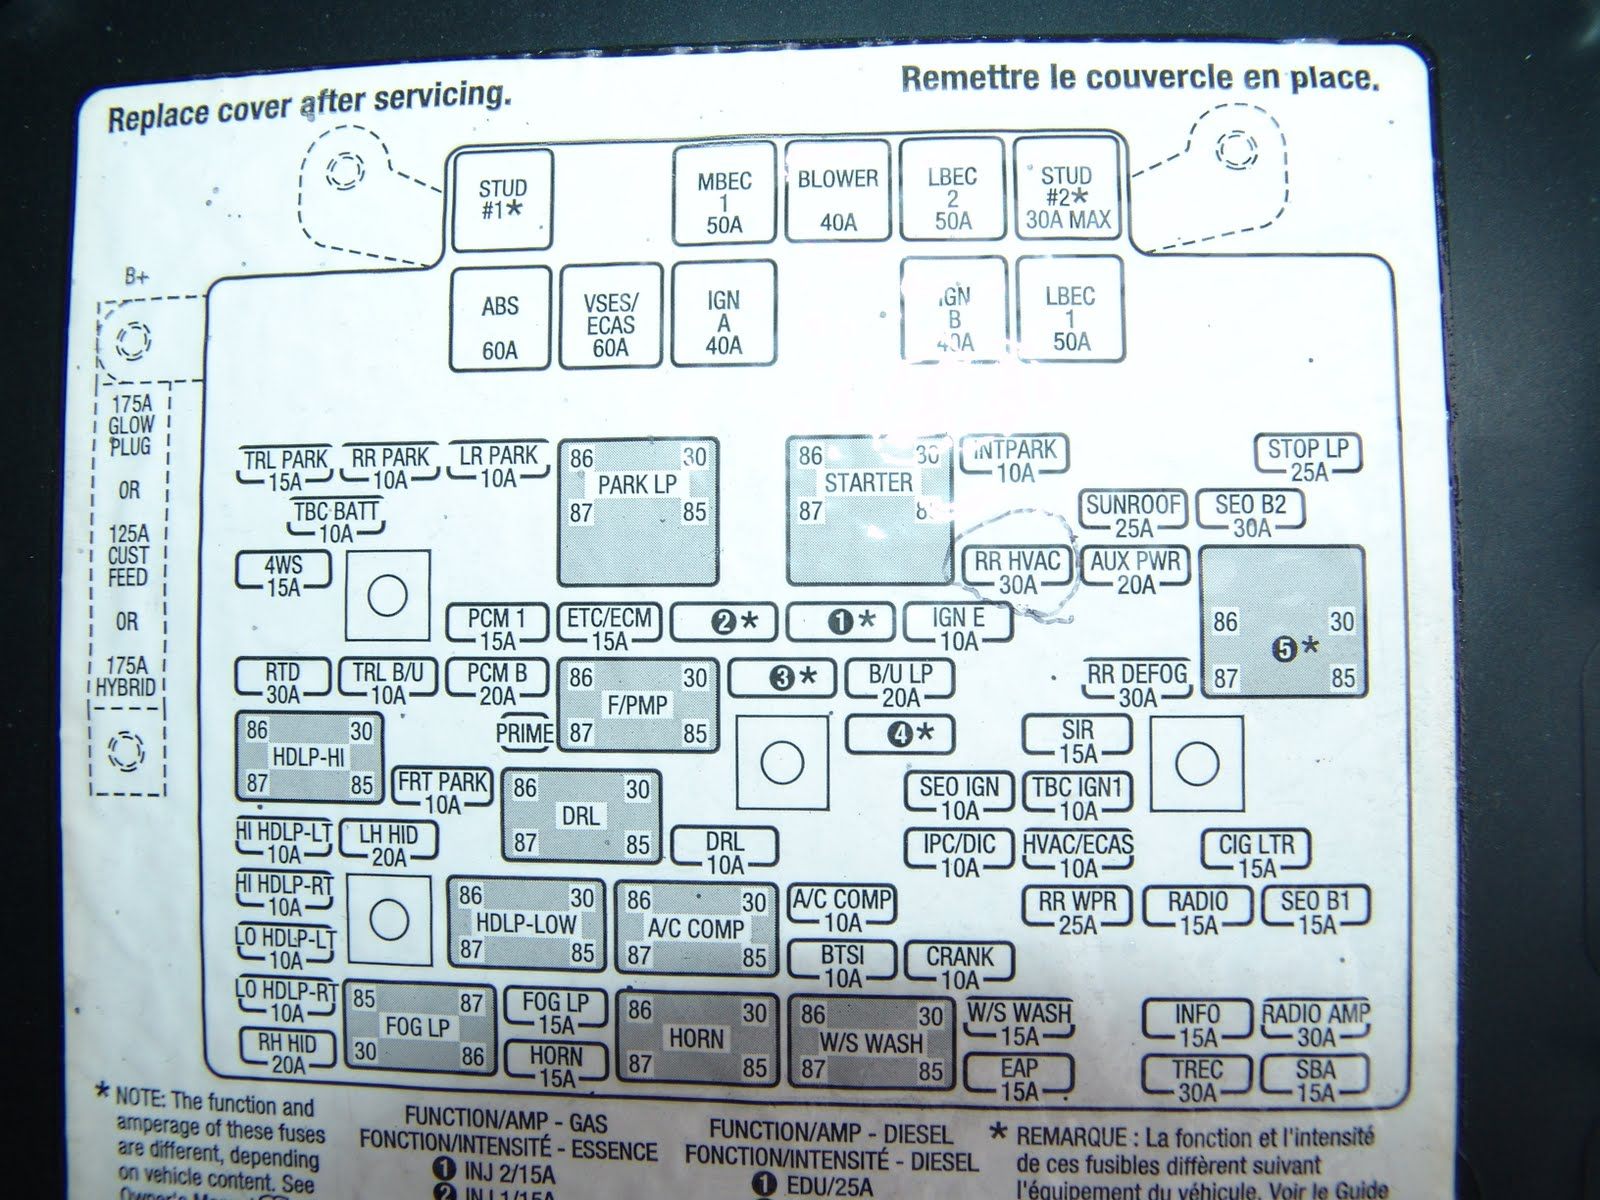 2004 chevy tahoe fuse box diagram mEZFgxa fuse box for chevy tahoe wiring diagram simonand fuse box for 2009 chevy tahoe at bayanpartner.co